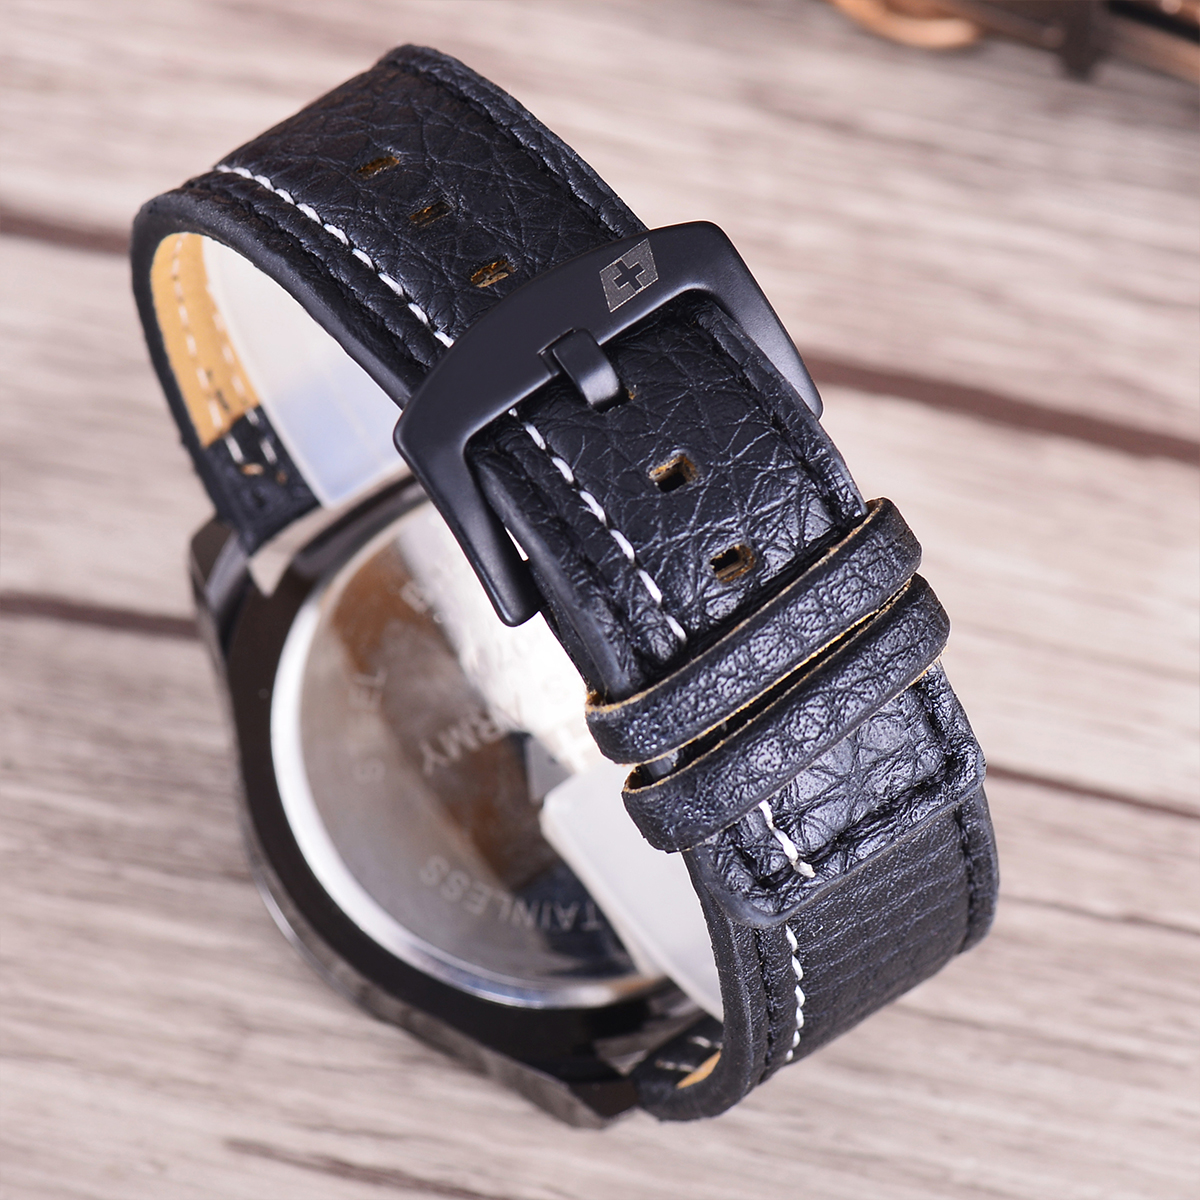 Swiss Army Jam Tangan Pria - Body Black - Black Dial - Black Leather Strap .